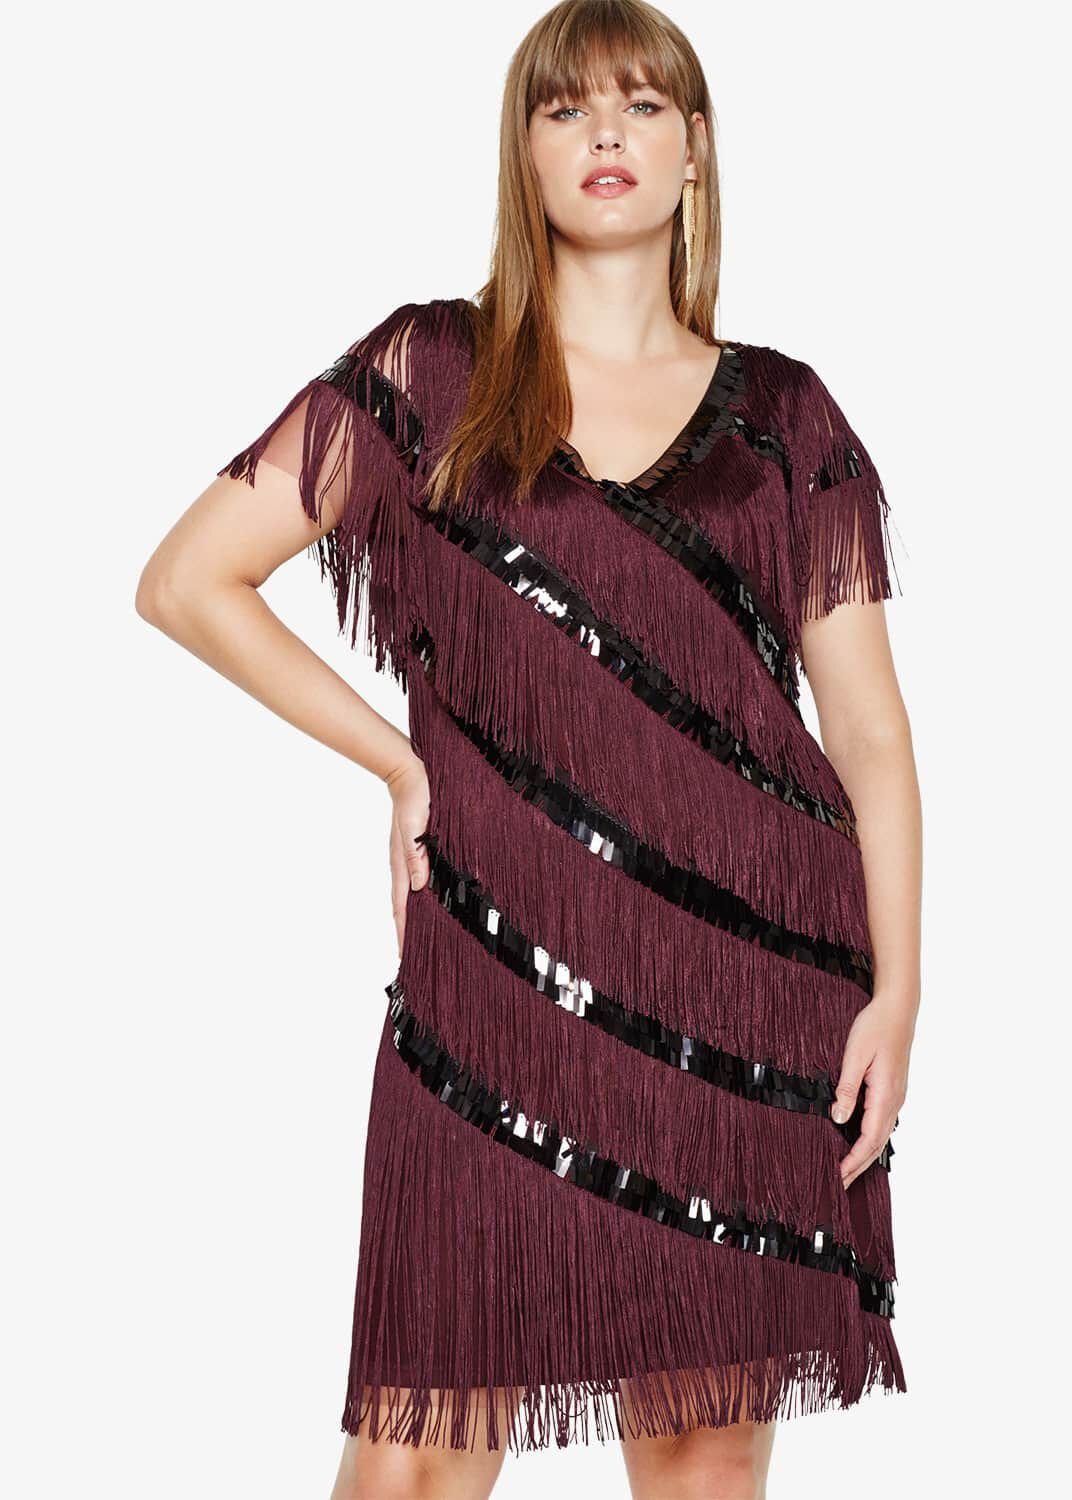 Studio 8 Lottie Fringe Dress, Purple, Shift